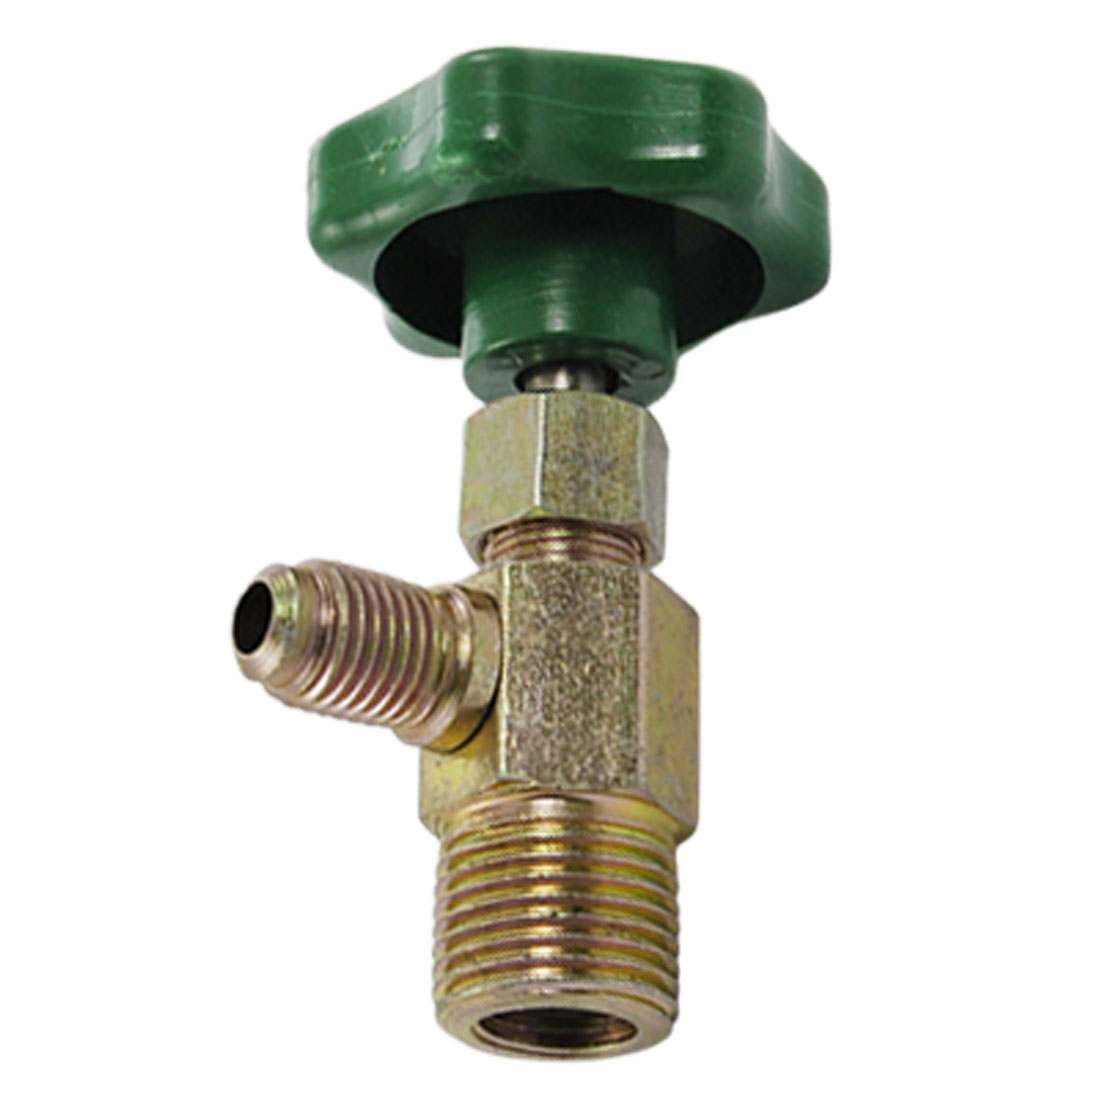 R12-Refrigerant-Screw-On-Can-Tap-Valve-Bottle-Opener